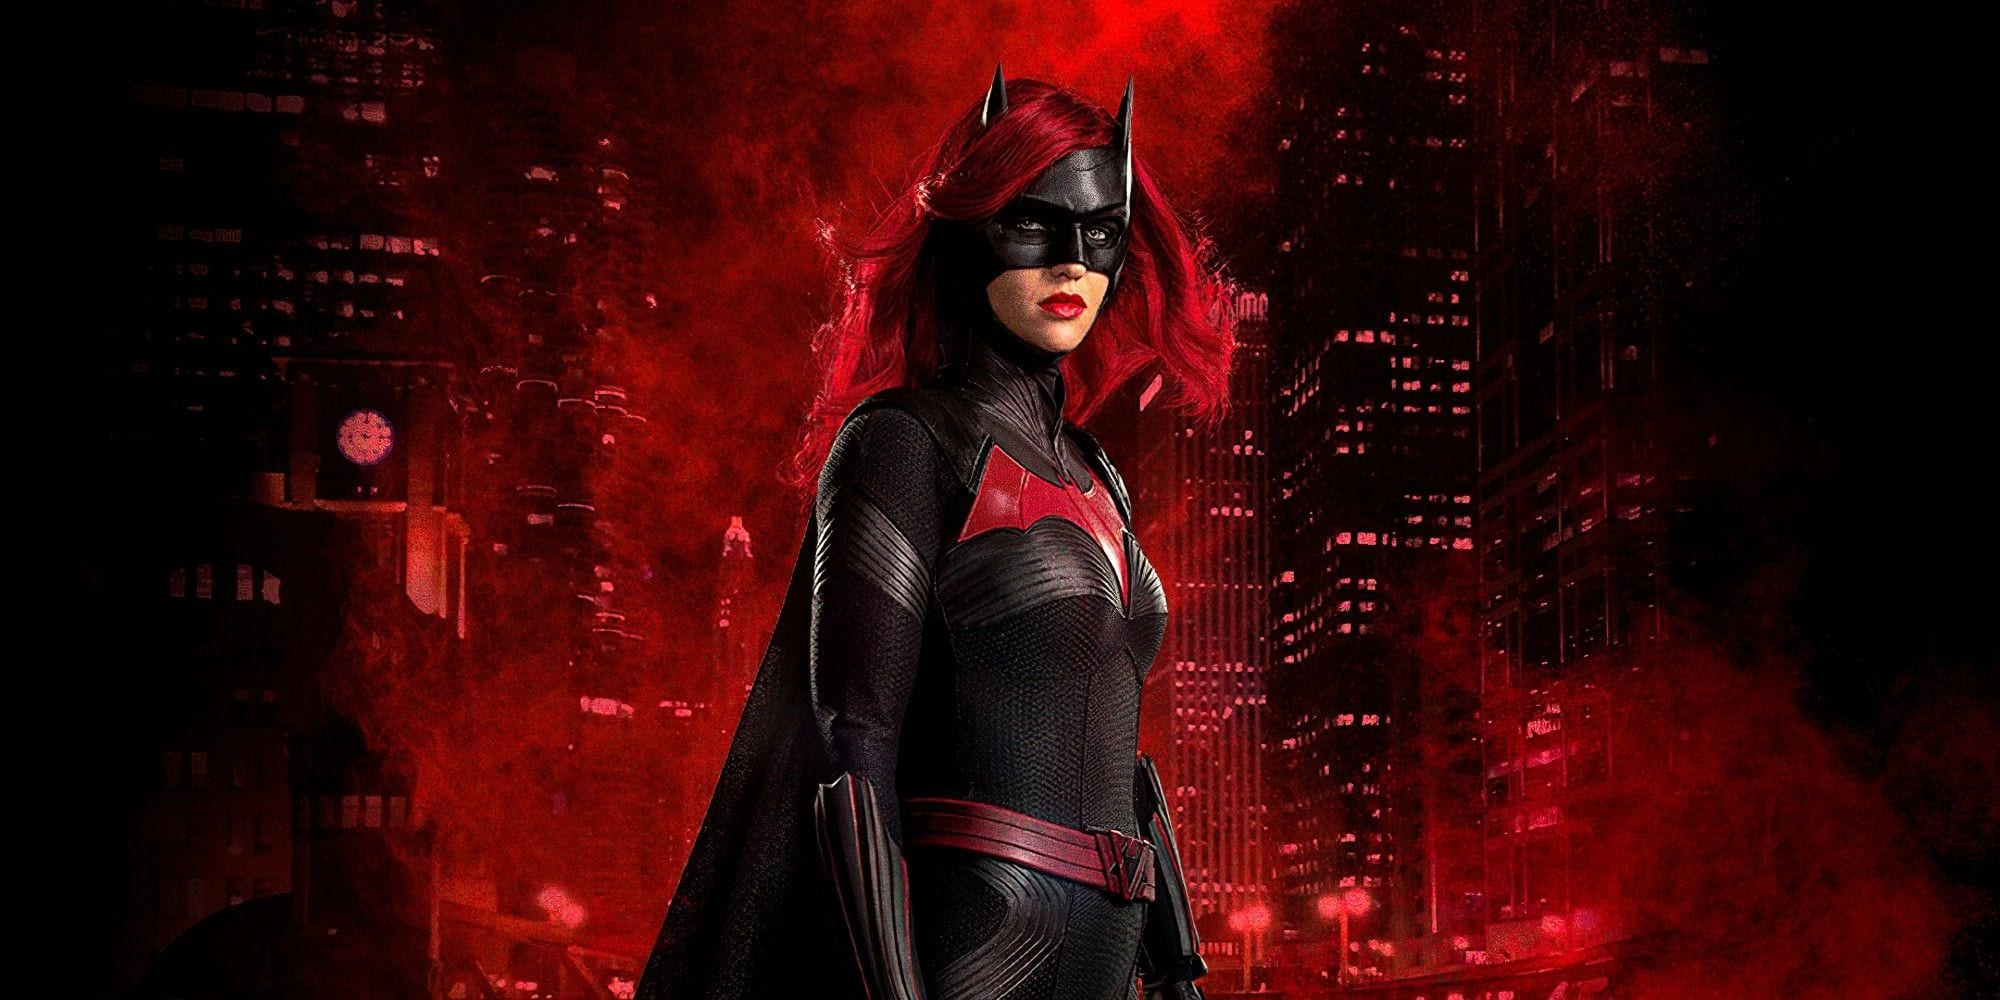 Batwoman Season 2 Episode 14: Release Date And Preview